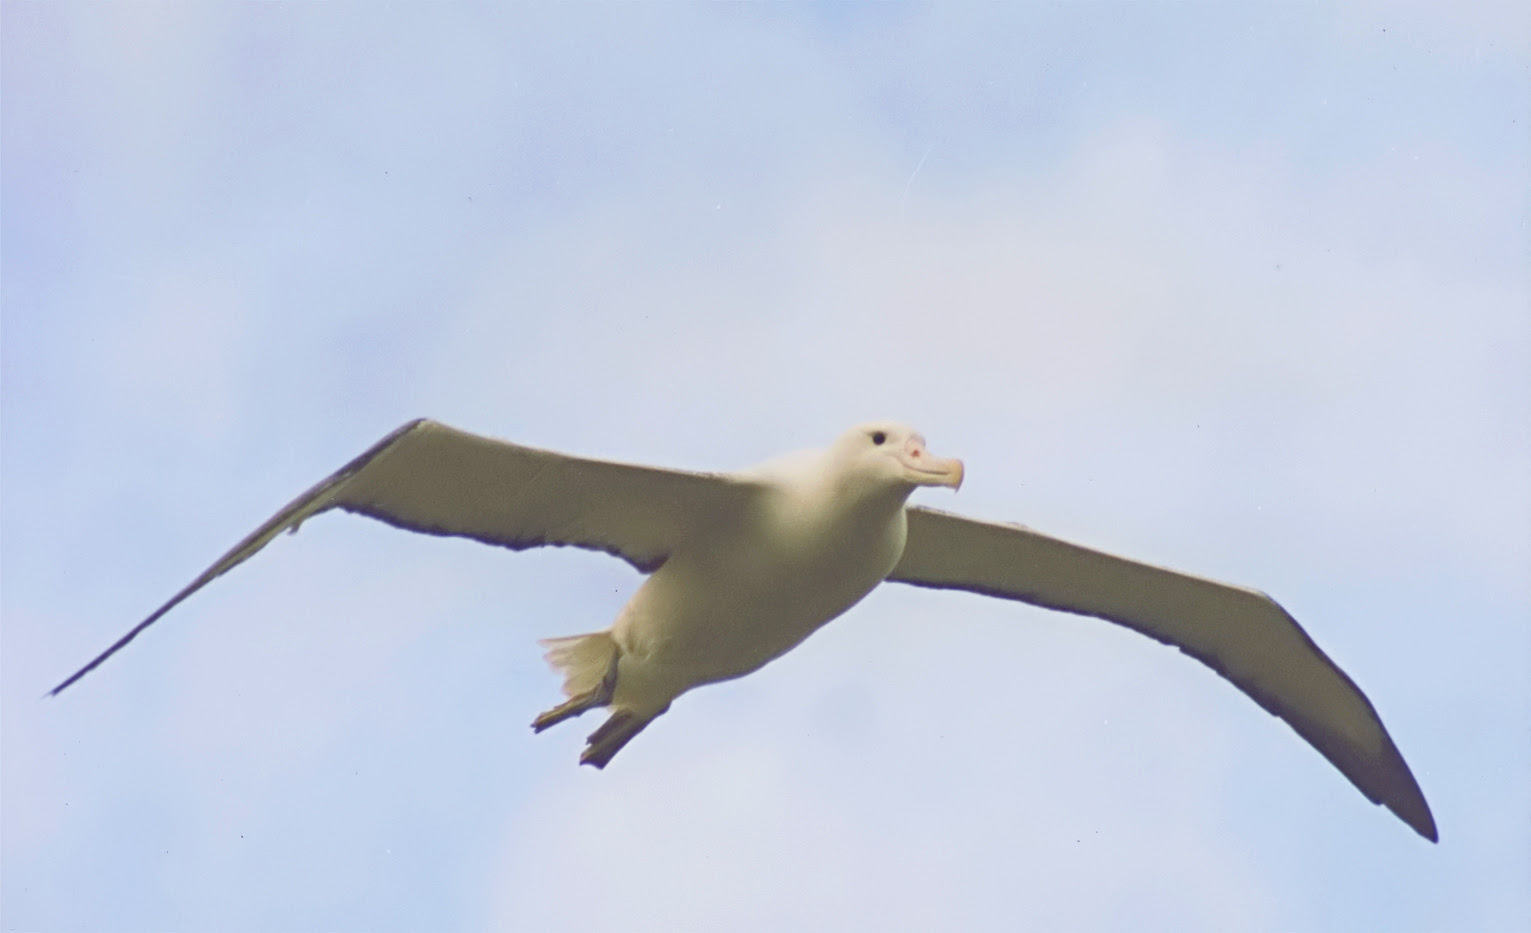 http://upload.wikimedia.org/wikipedia/commons/2/2d/Southern_Royal_Albatross_in_flight.jpg